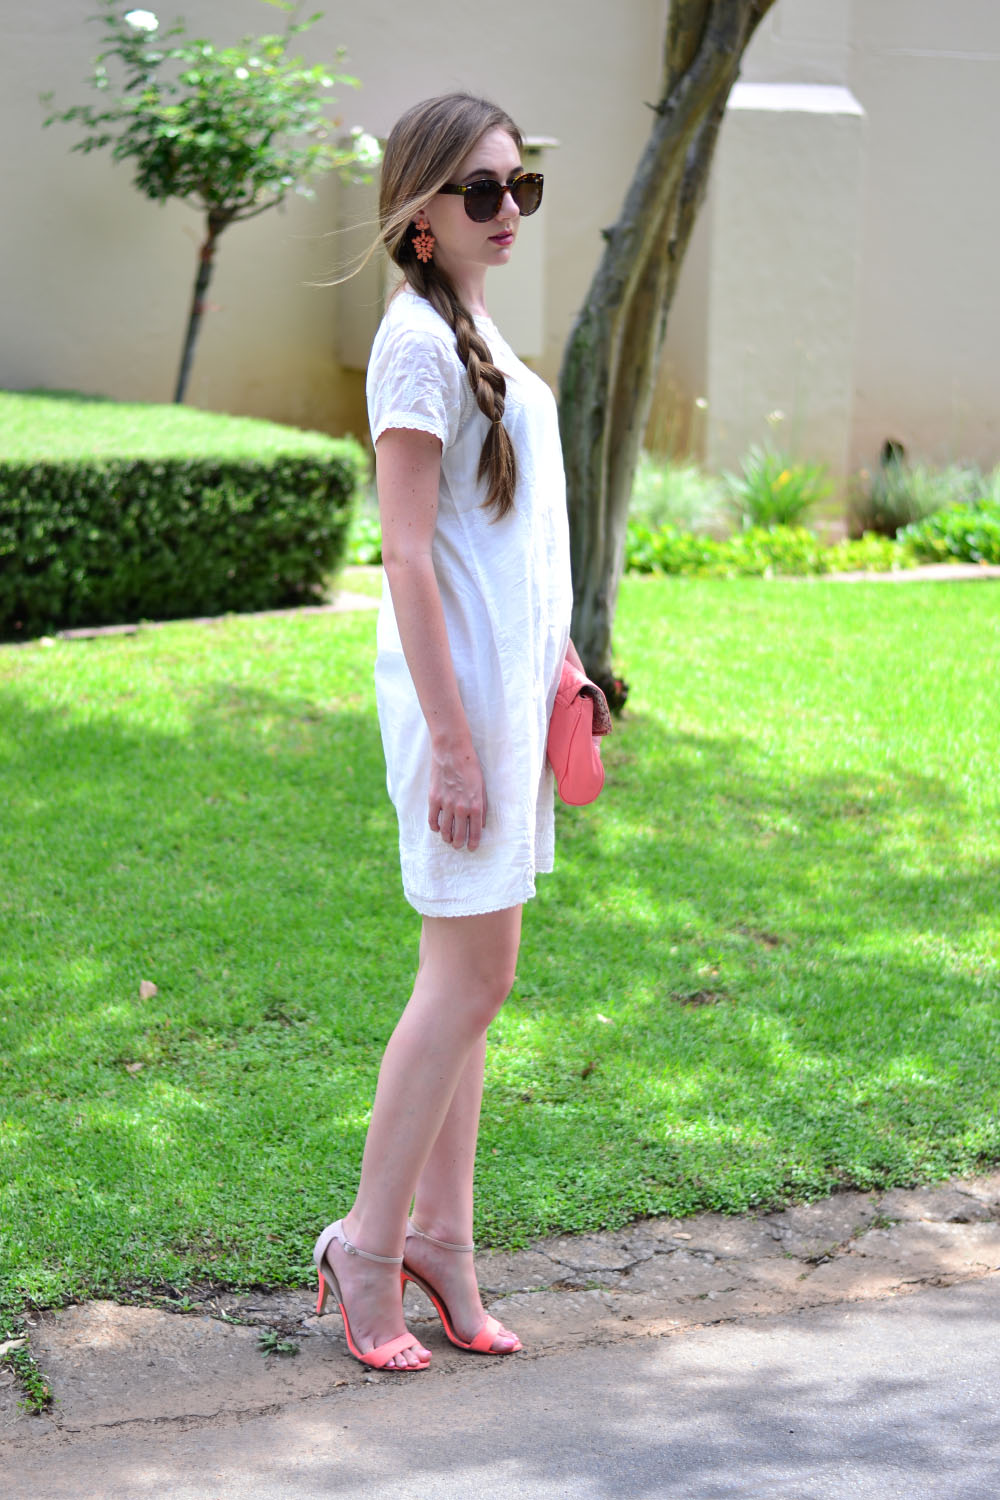 White Summer Dress Arum Lilea